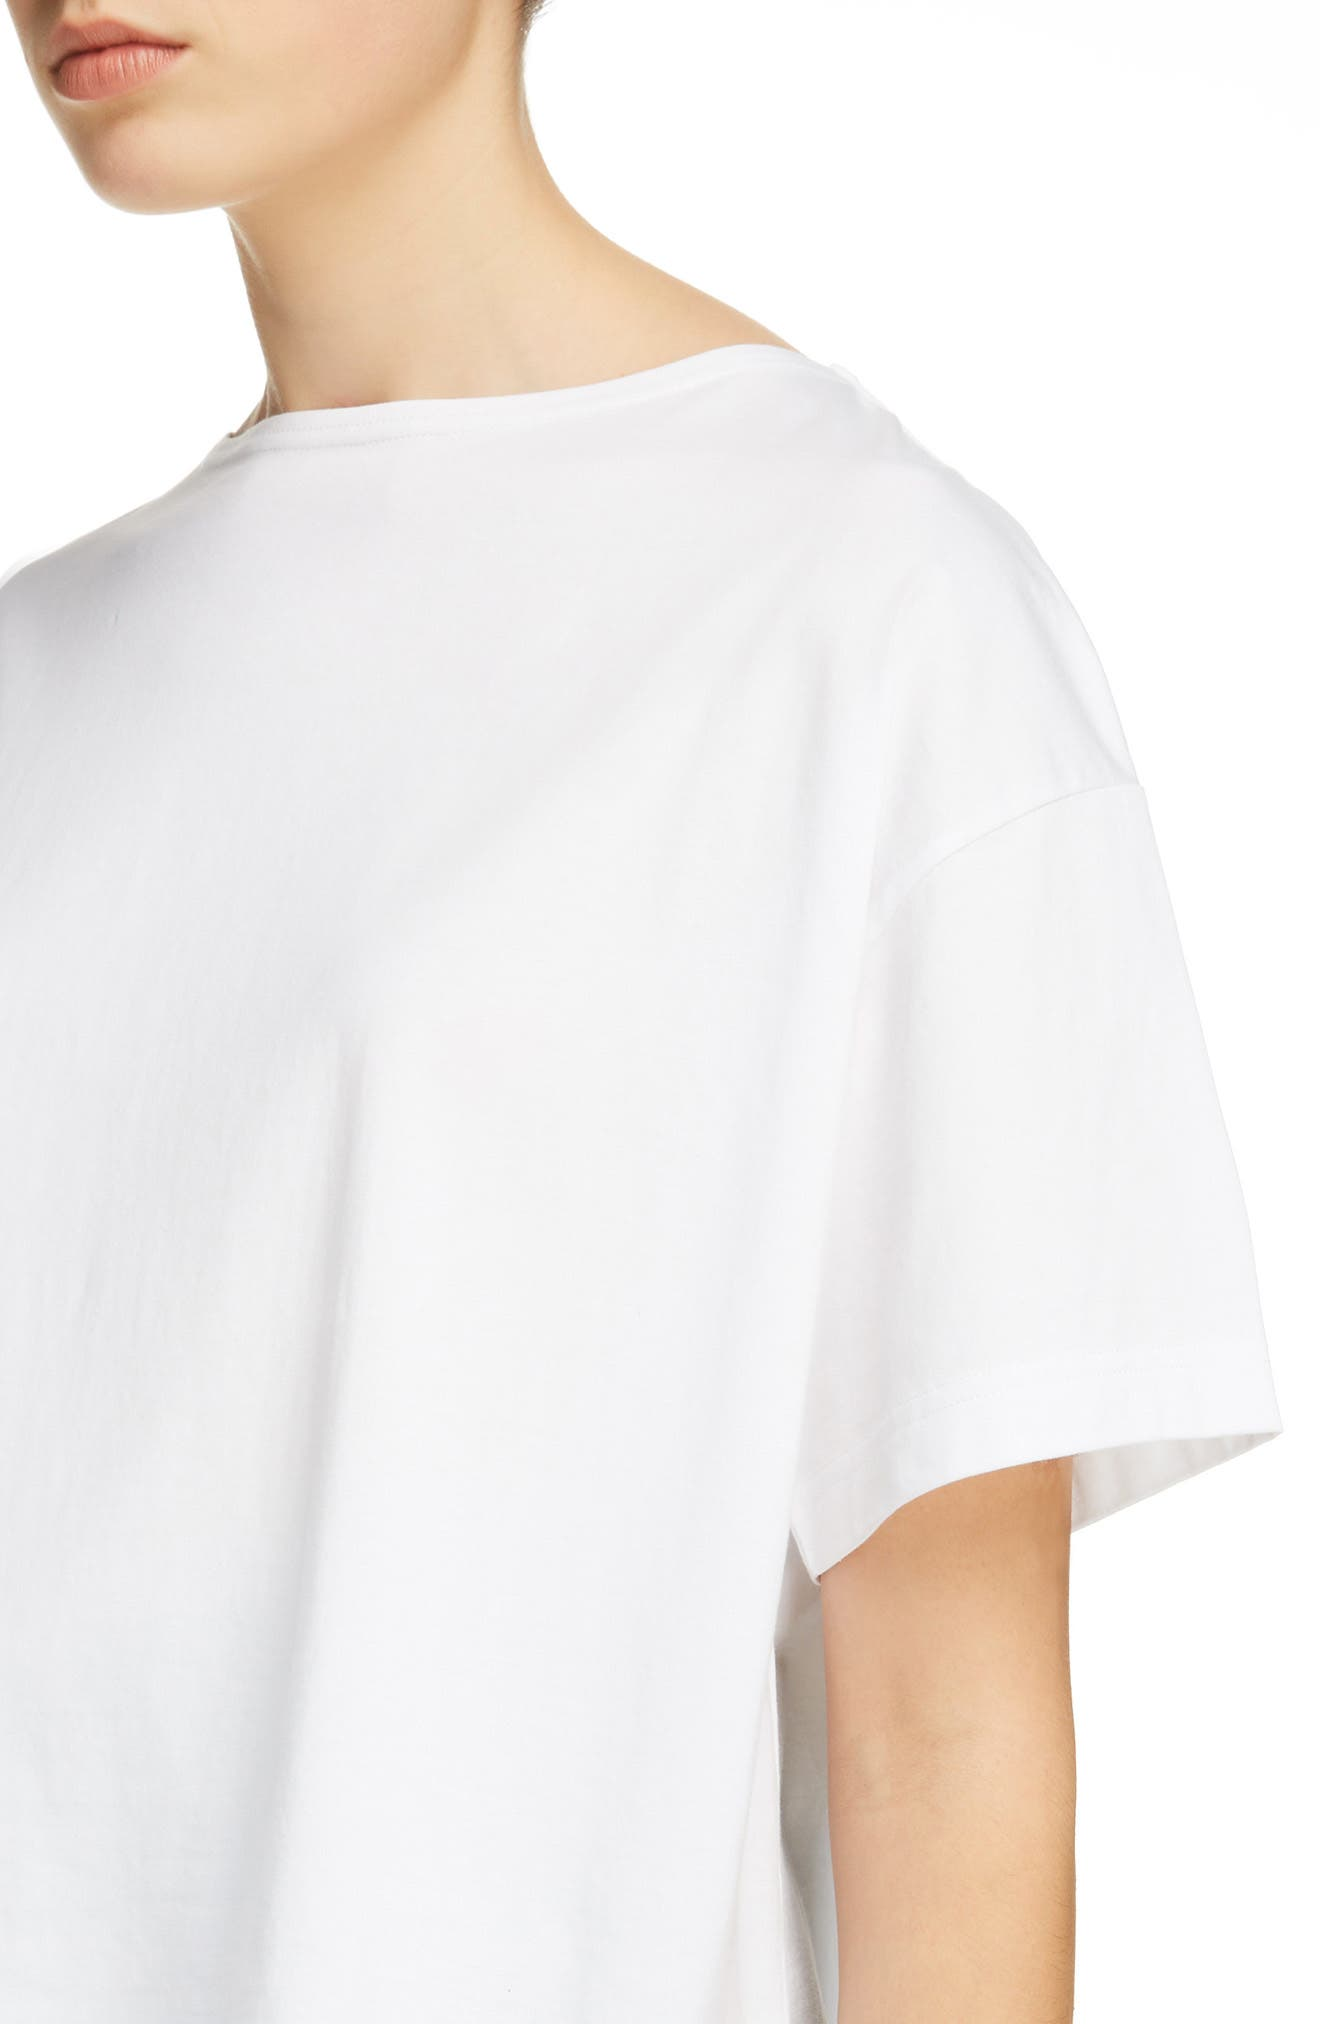 Marwig Boxy Tee,                             Alternate thumbnail 4, color,                             OPTIC WHITE